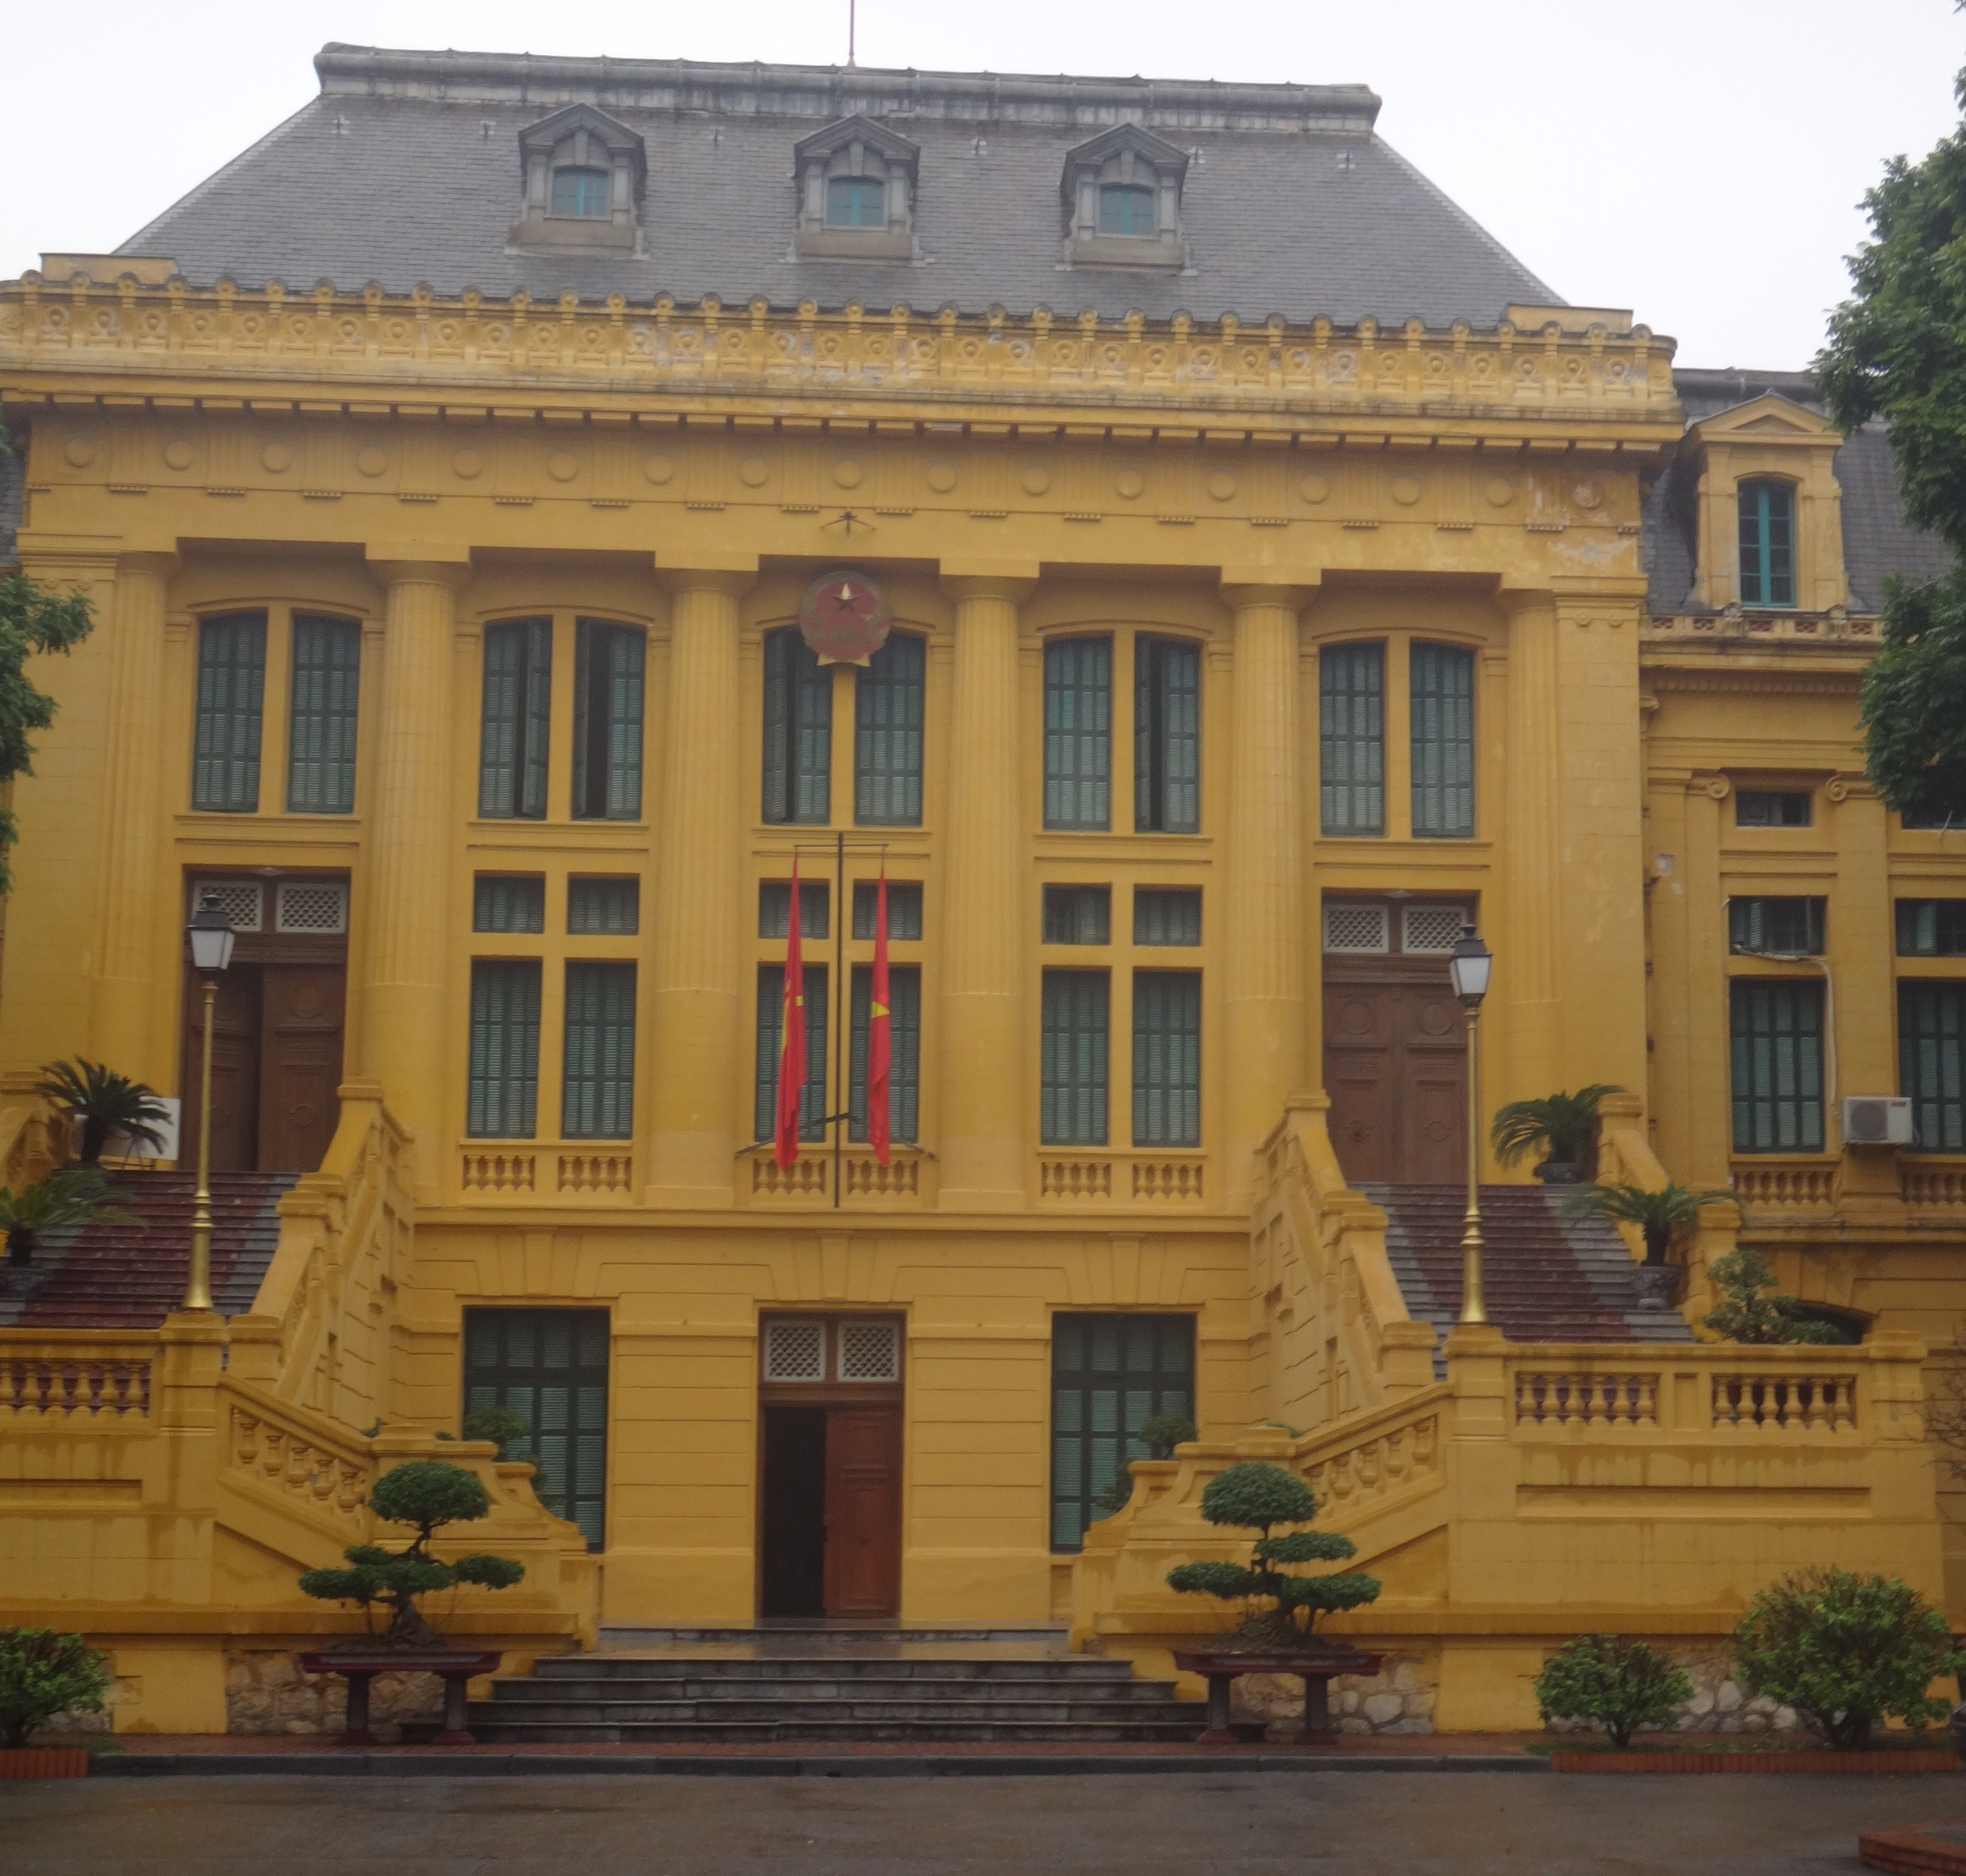 Supreme Court -- built by the French in colonial times .. many Vietnamese political prisoners went from here to the prison across the street.